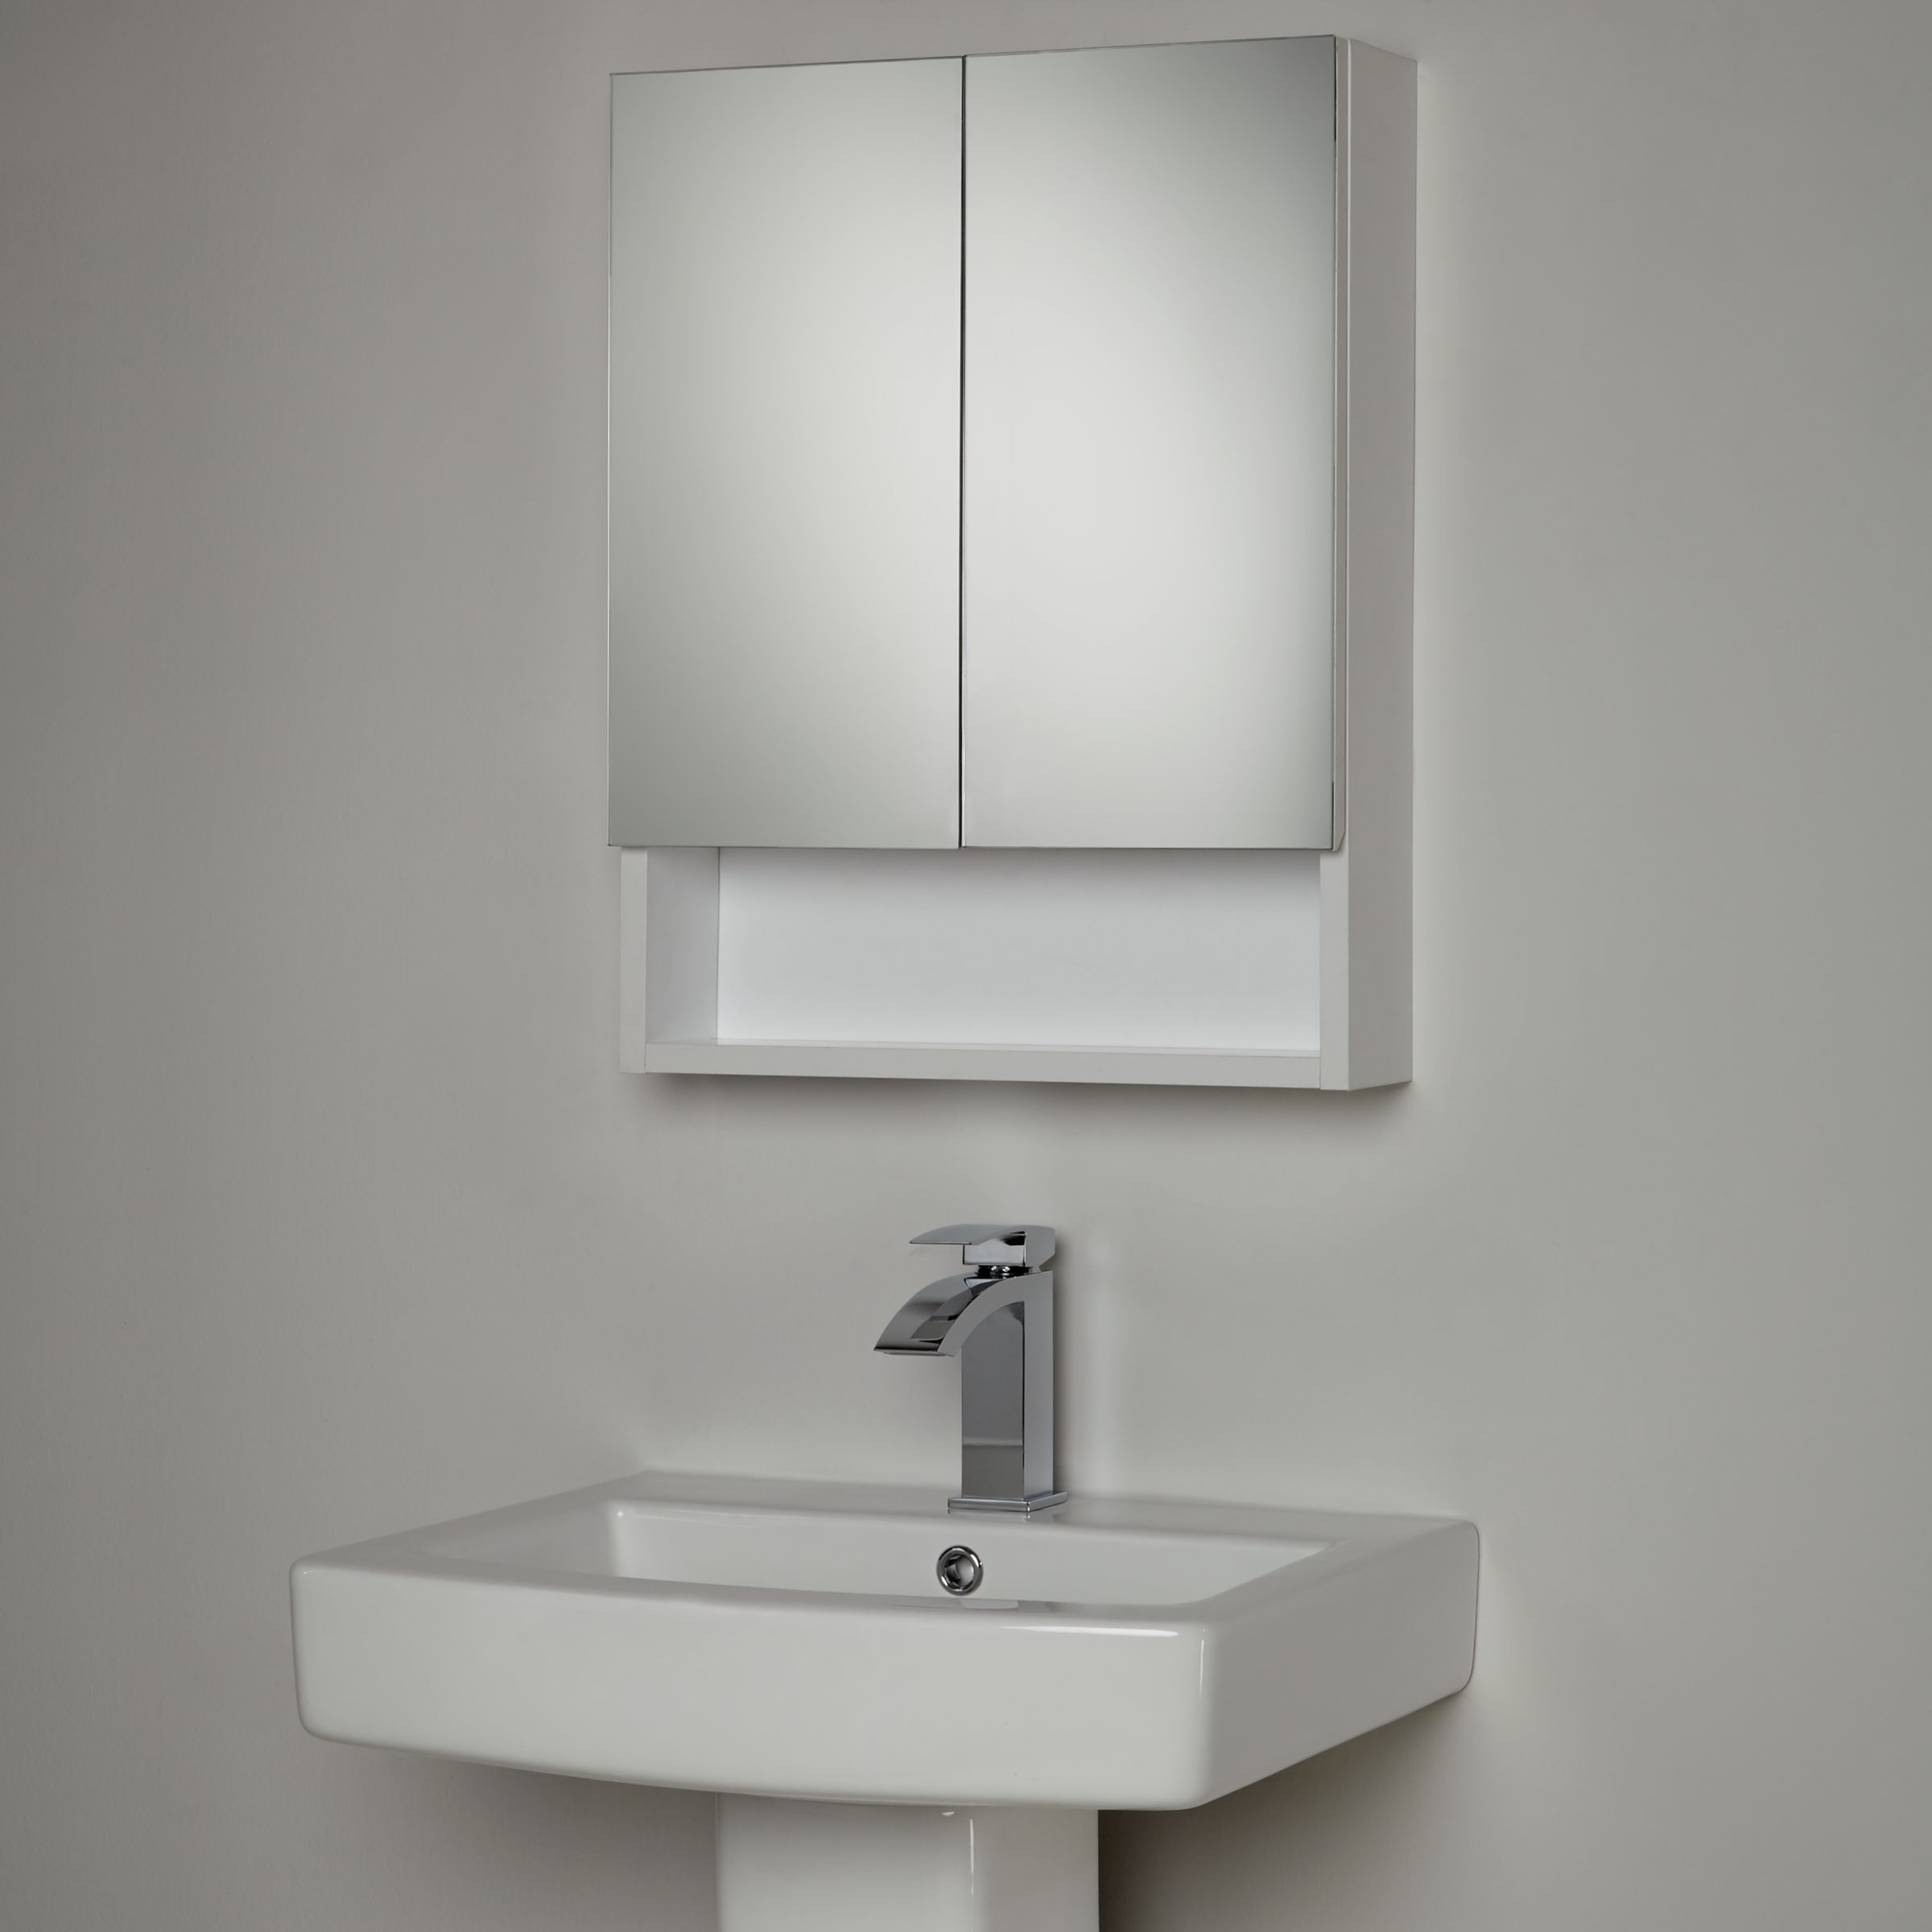 john lewis bathroom cabinets house by lewis equate mirrored bathroom octer 163 95 00 18030